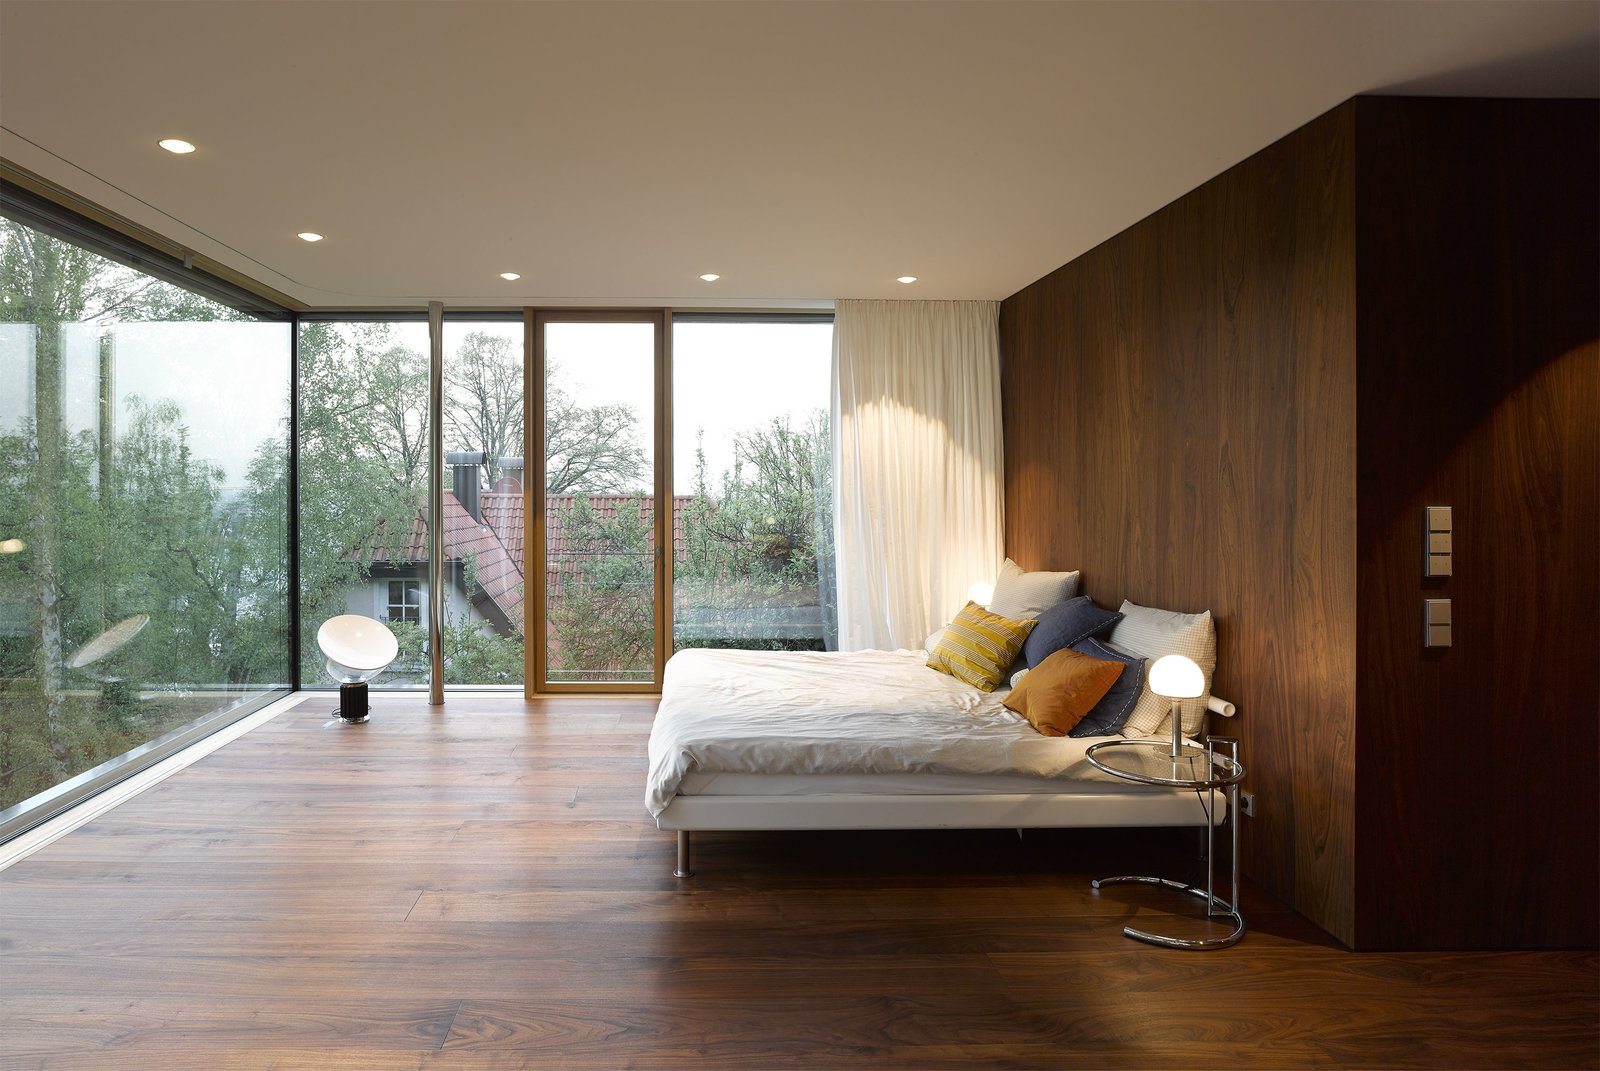 Light streams into the bedroom through walls of floor-to-ceiling glass. The windows are triple-glazed, creating a tight, eco-friendly seal.  Bedrooms by Dwell from An Uninspired Home in Germany Gets a Bright, Eco-Friendly Update